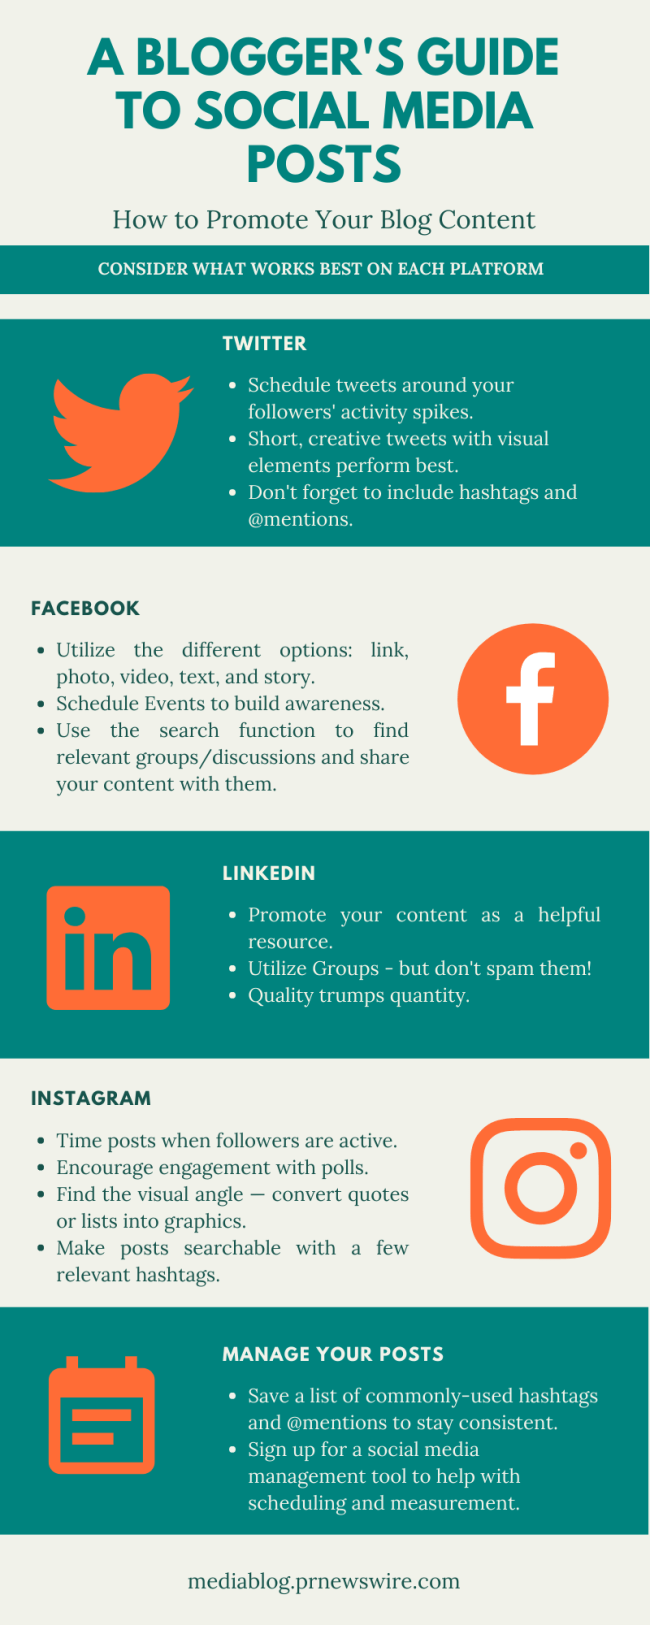 A Blogger's Guide to Social Media Posts infographic